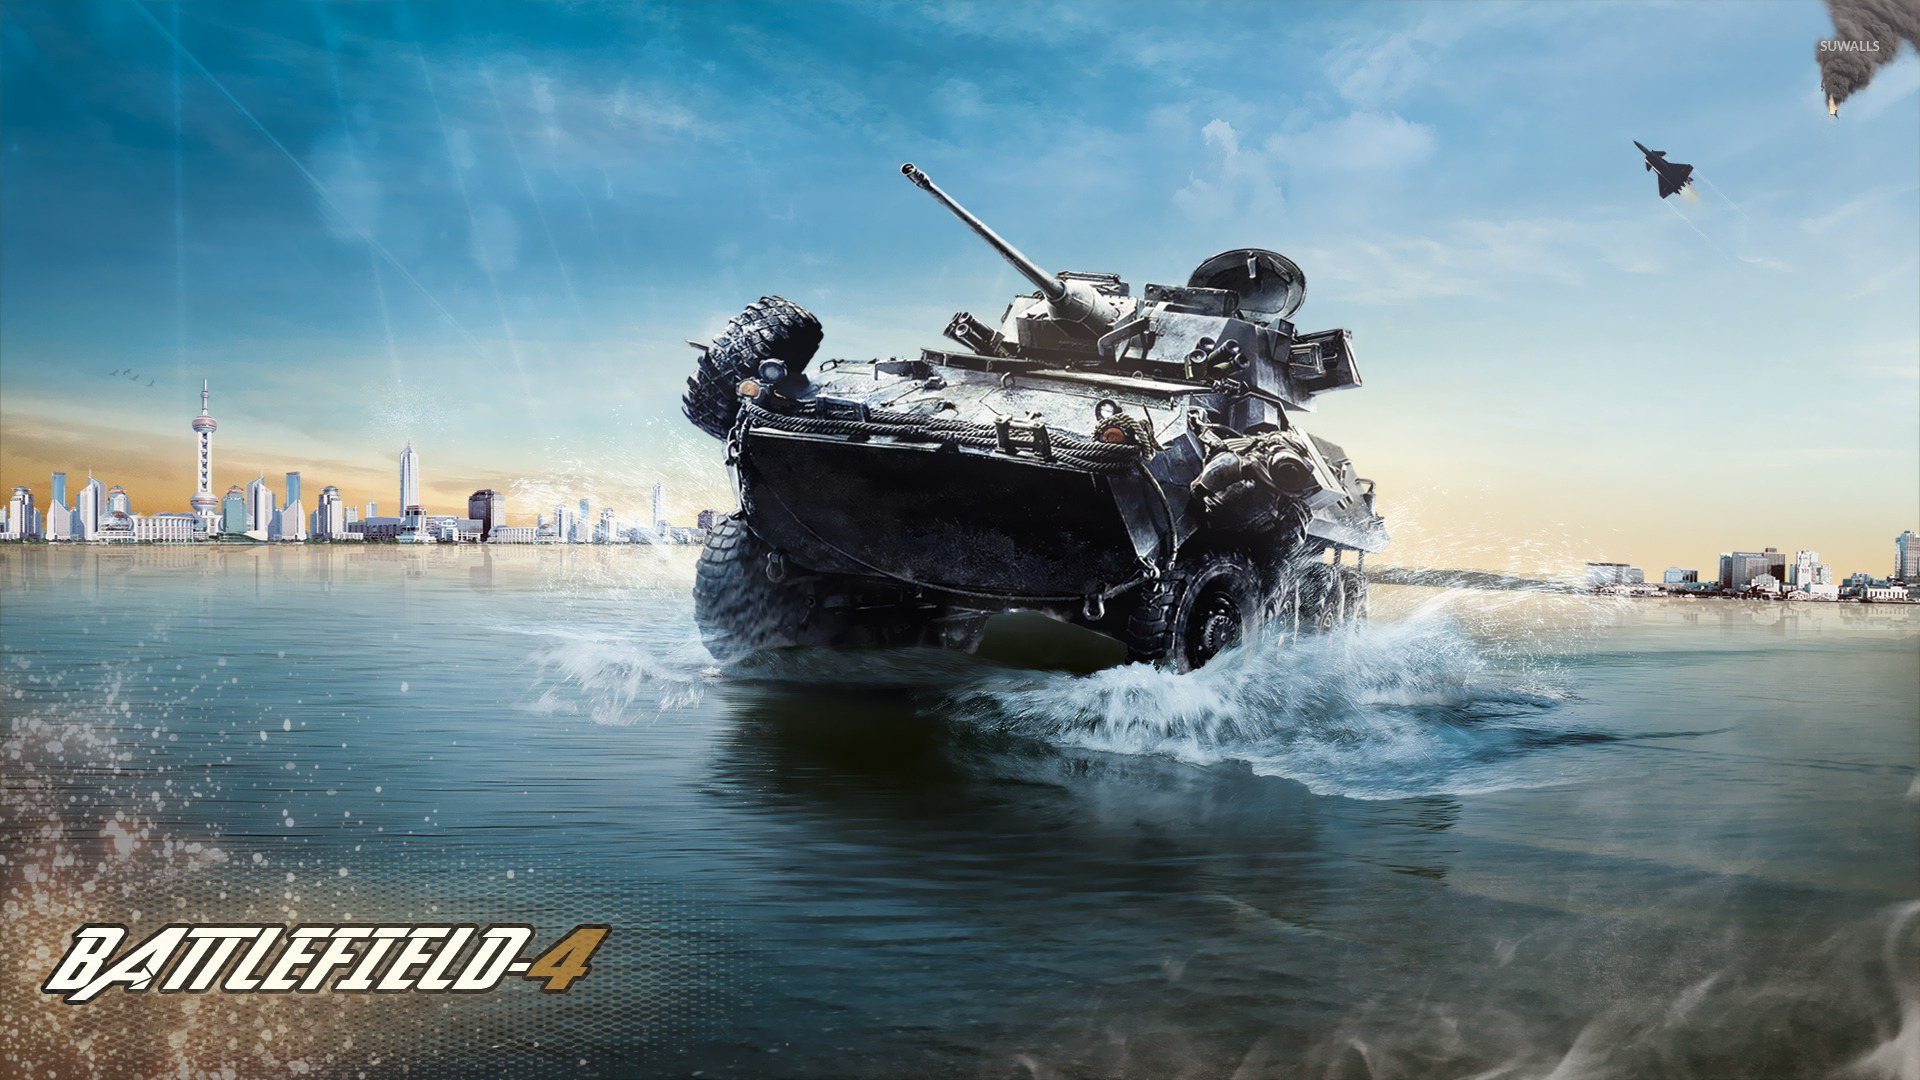 Battlefield 4 Wallpaper 2560x1440 picture 1920x1080